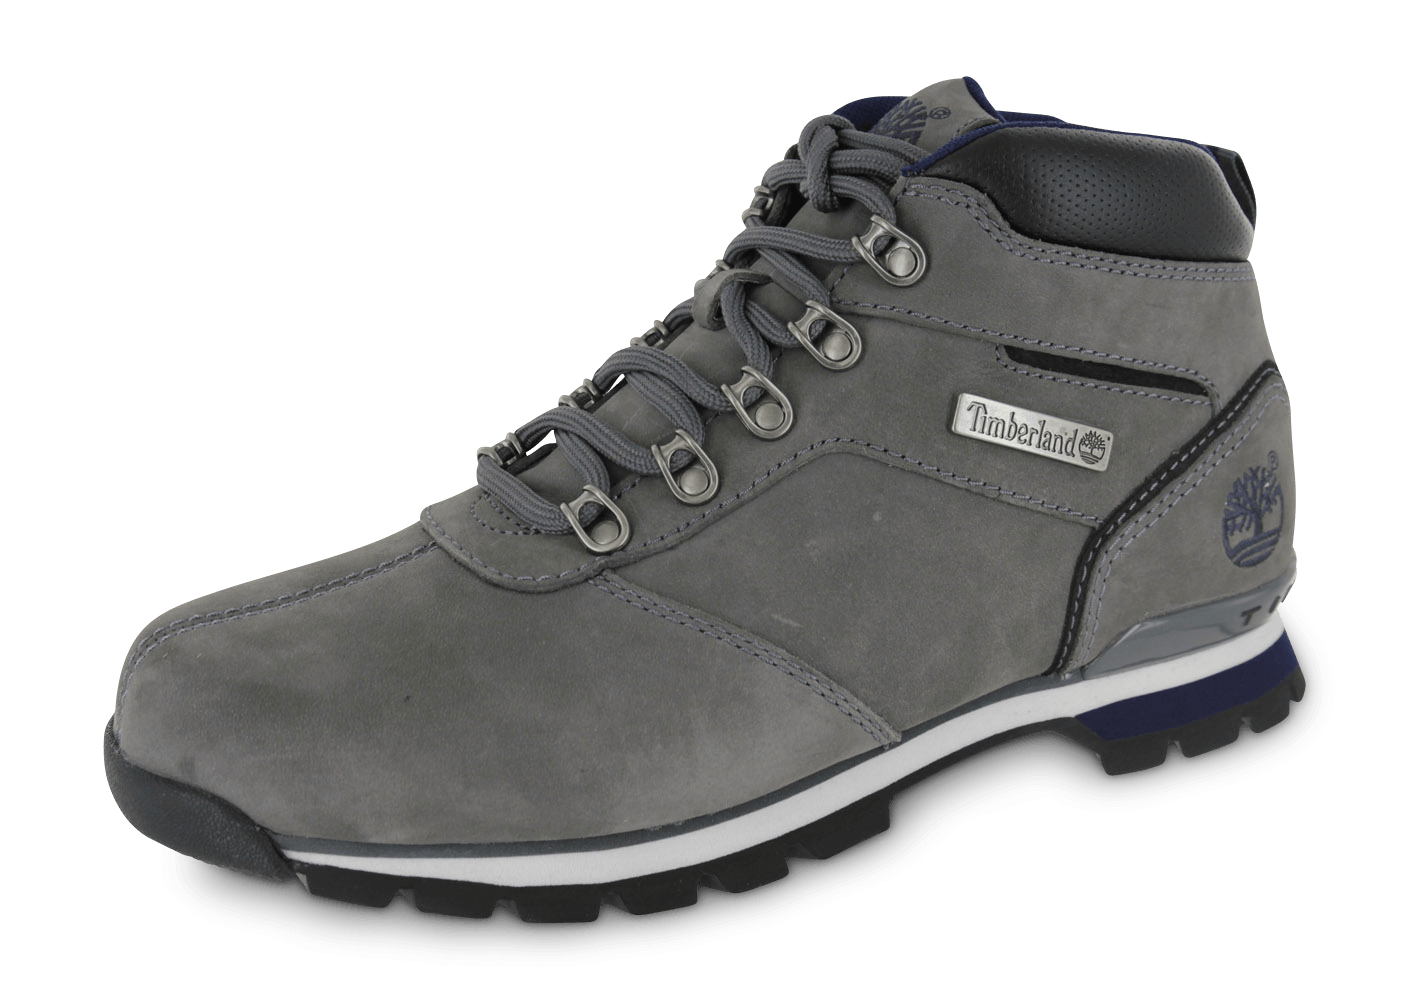 Chaussures Timberland grises homme 7sDC66